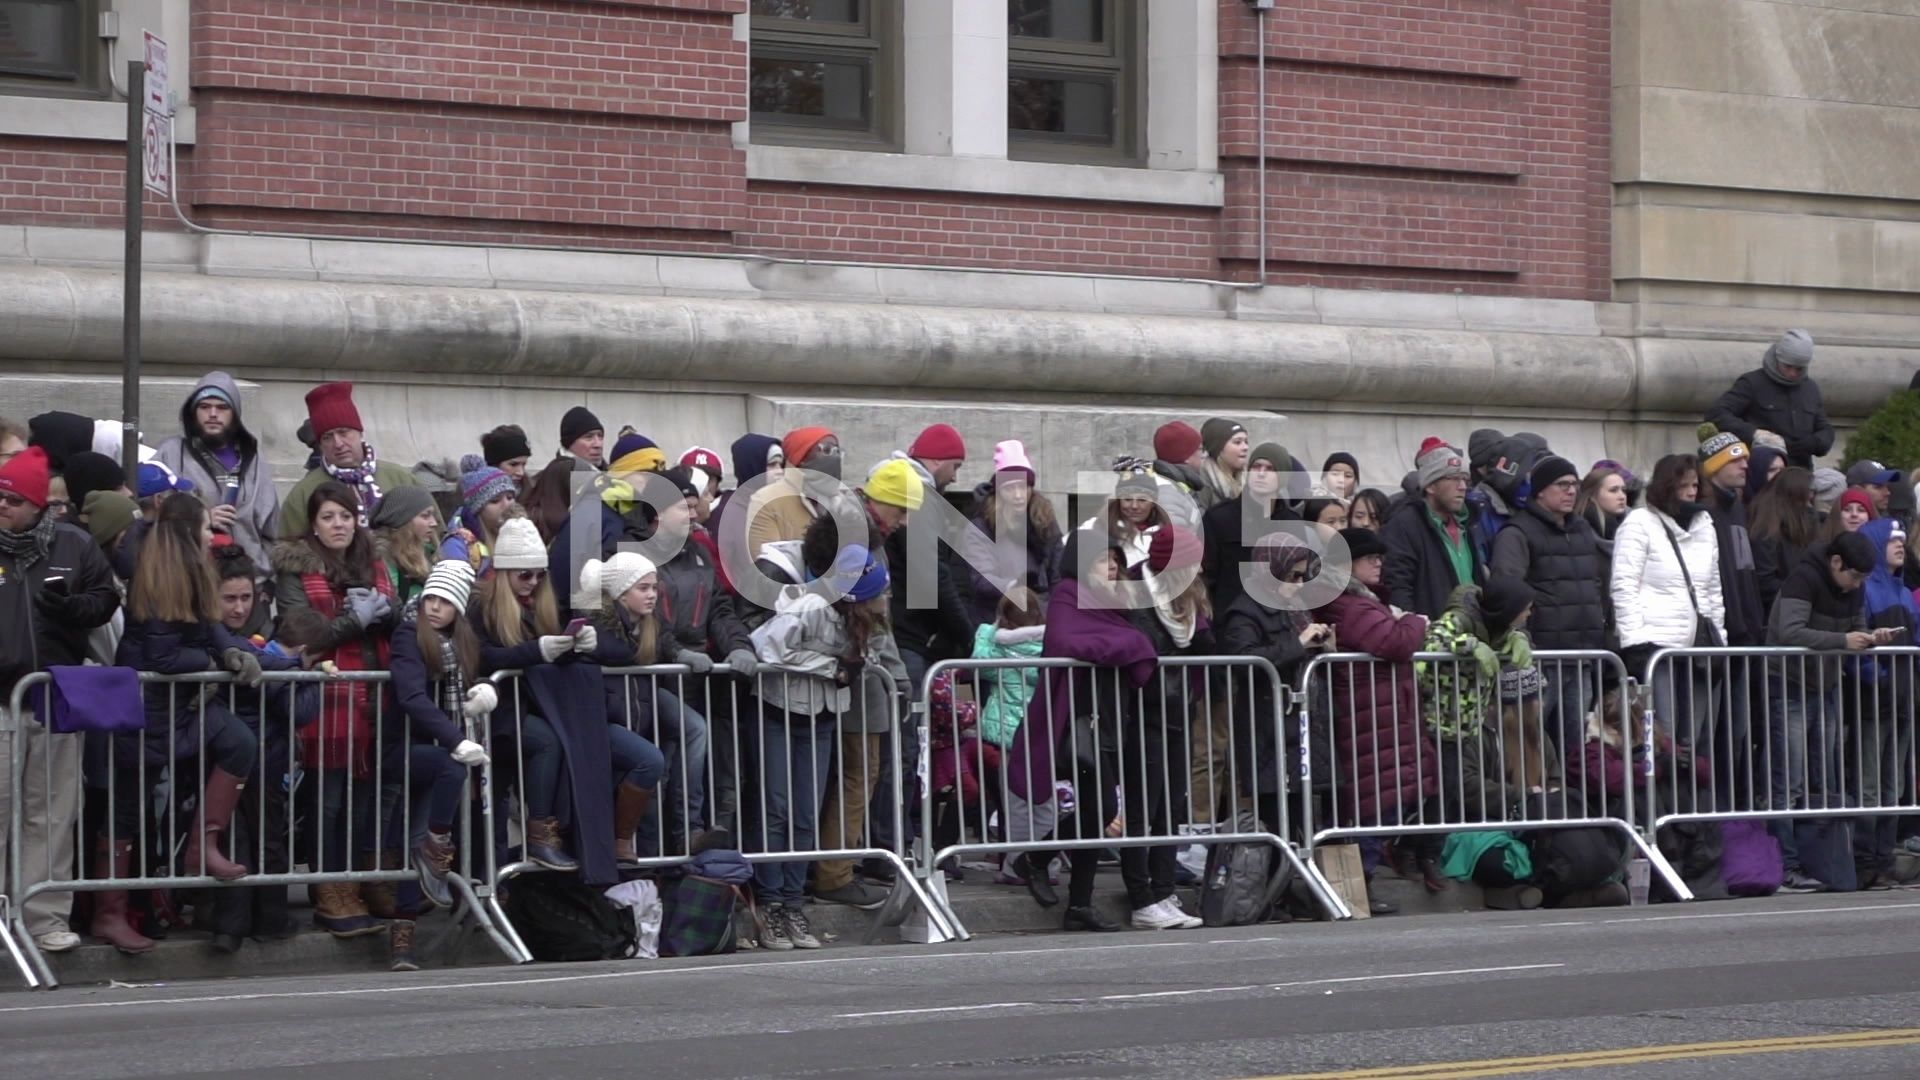 Crowds Of People Waiting For Parade In Slow Motion Stock Footage Ad Waiting Parade Crowds People Parades Crowd Macy S Thanksgiving Day Parade